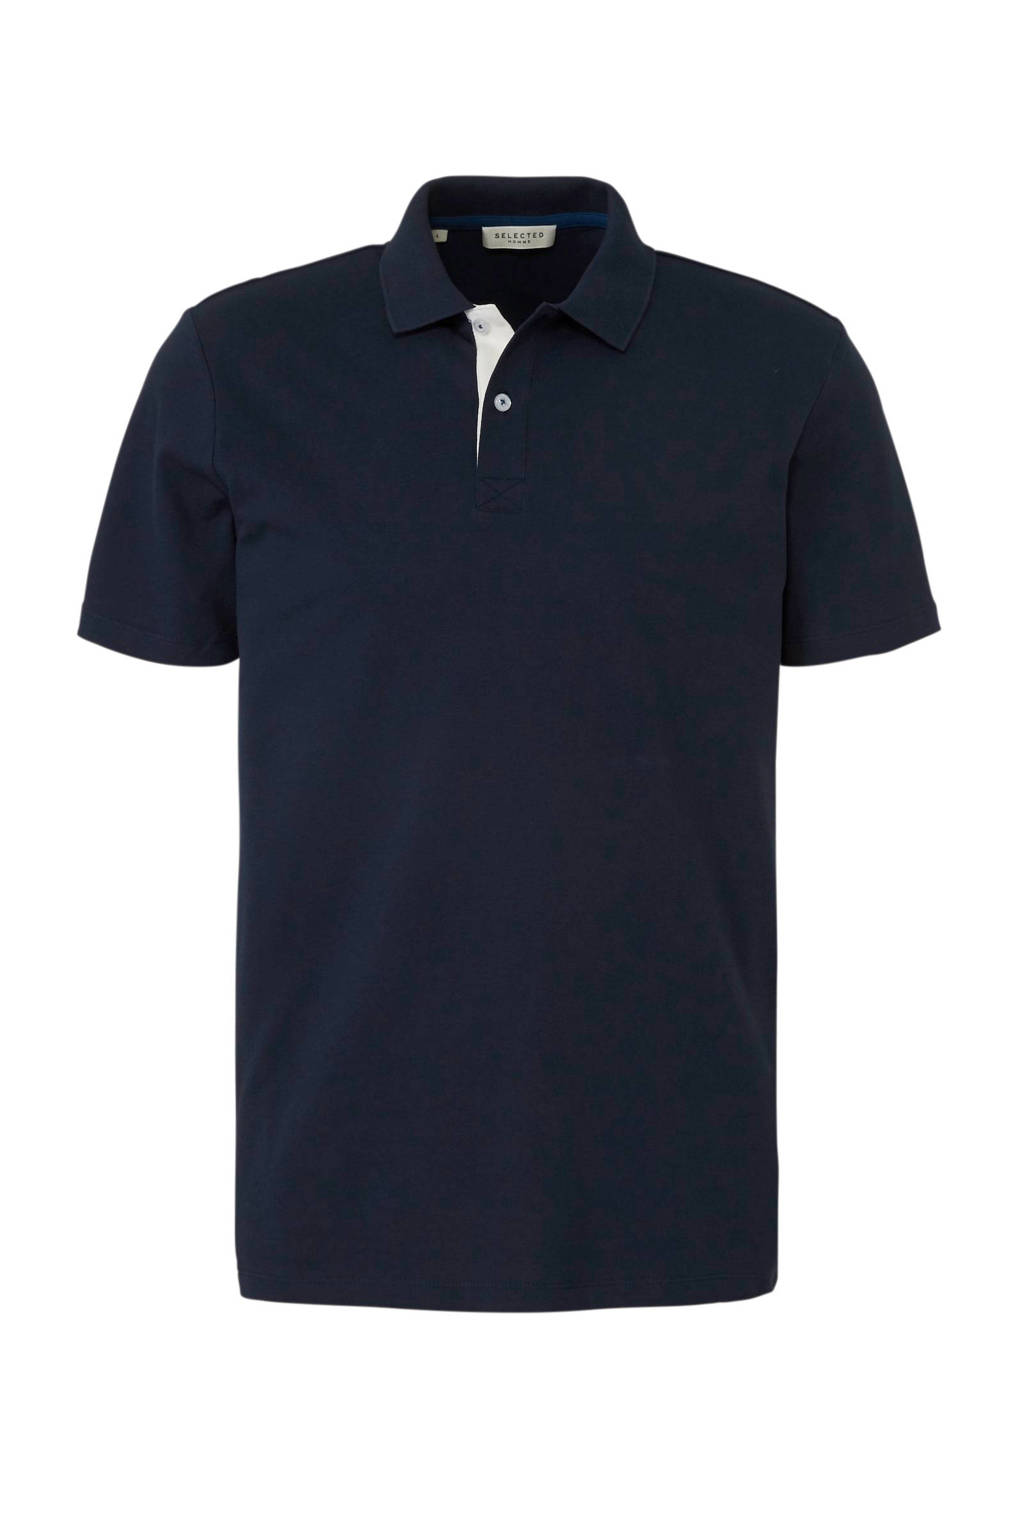 SELECTED HOMME polo, Donkerblauw